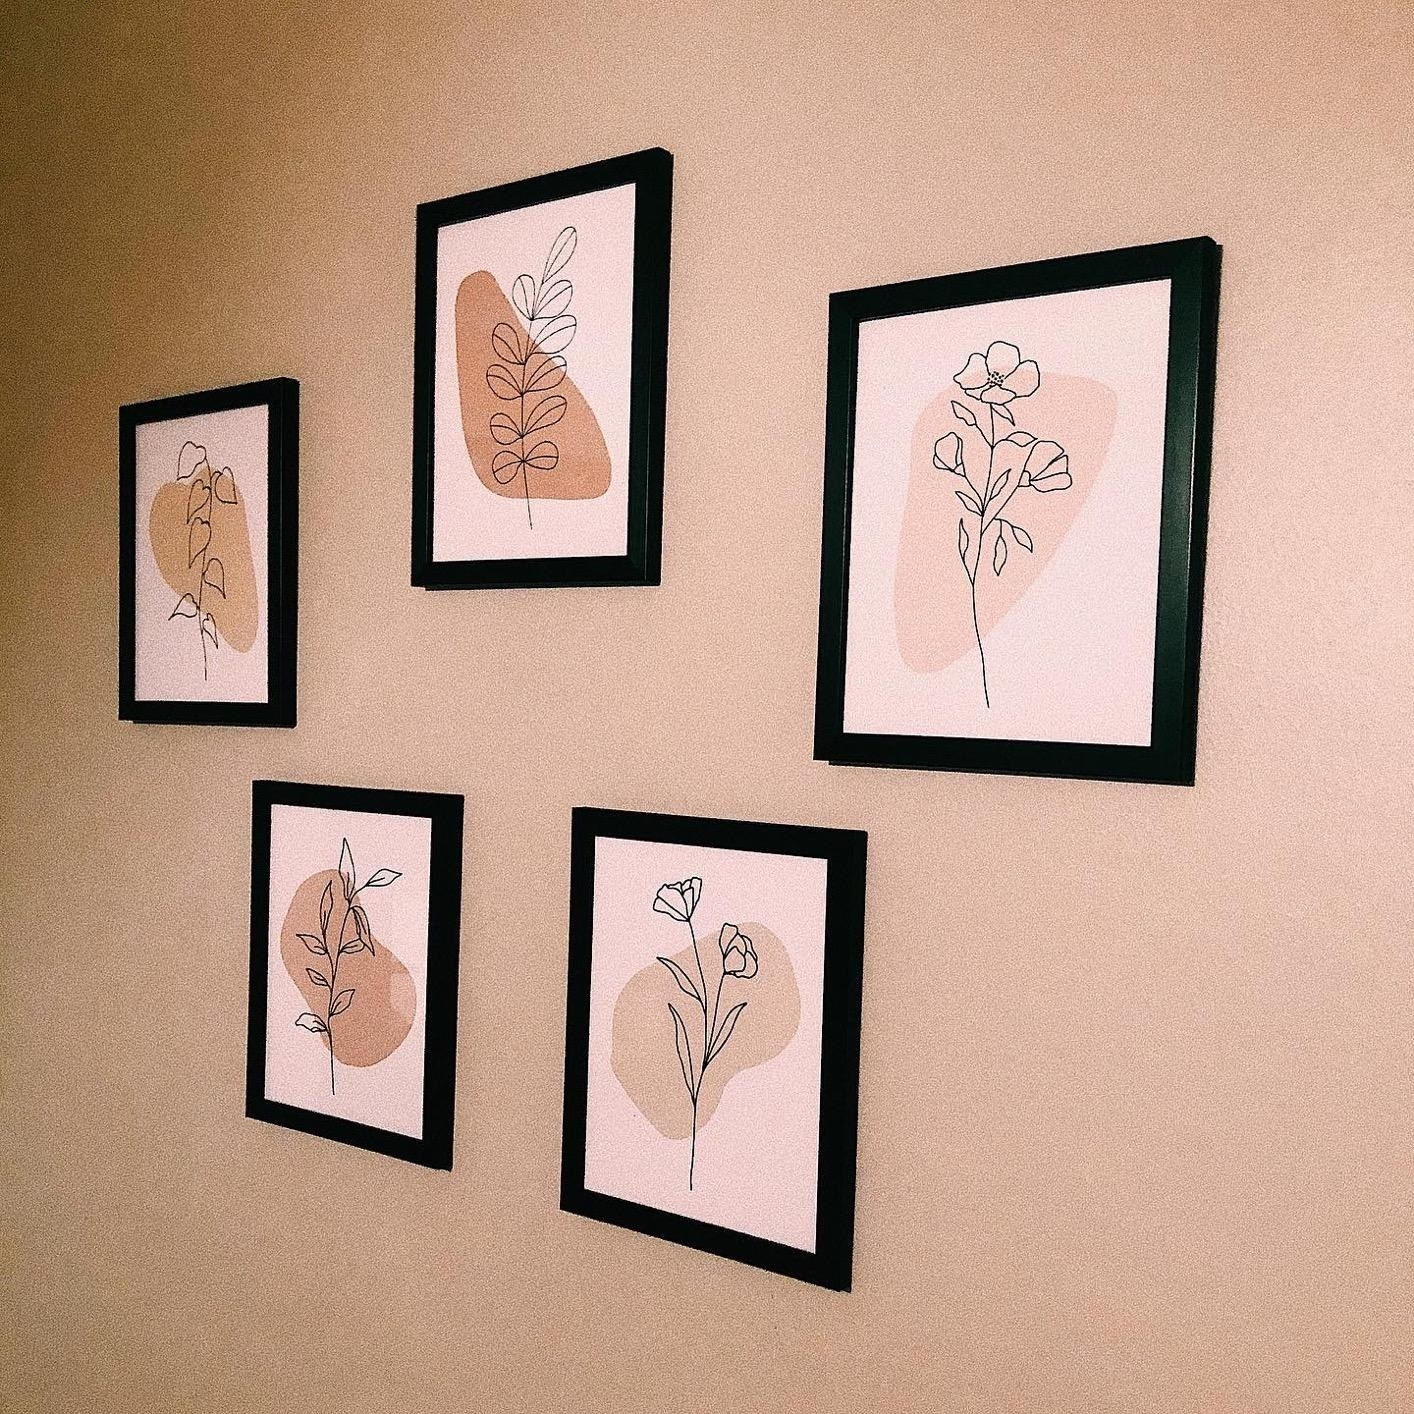 Five framed prints of line drawn flowers and leaves